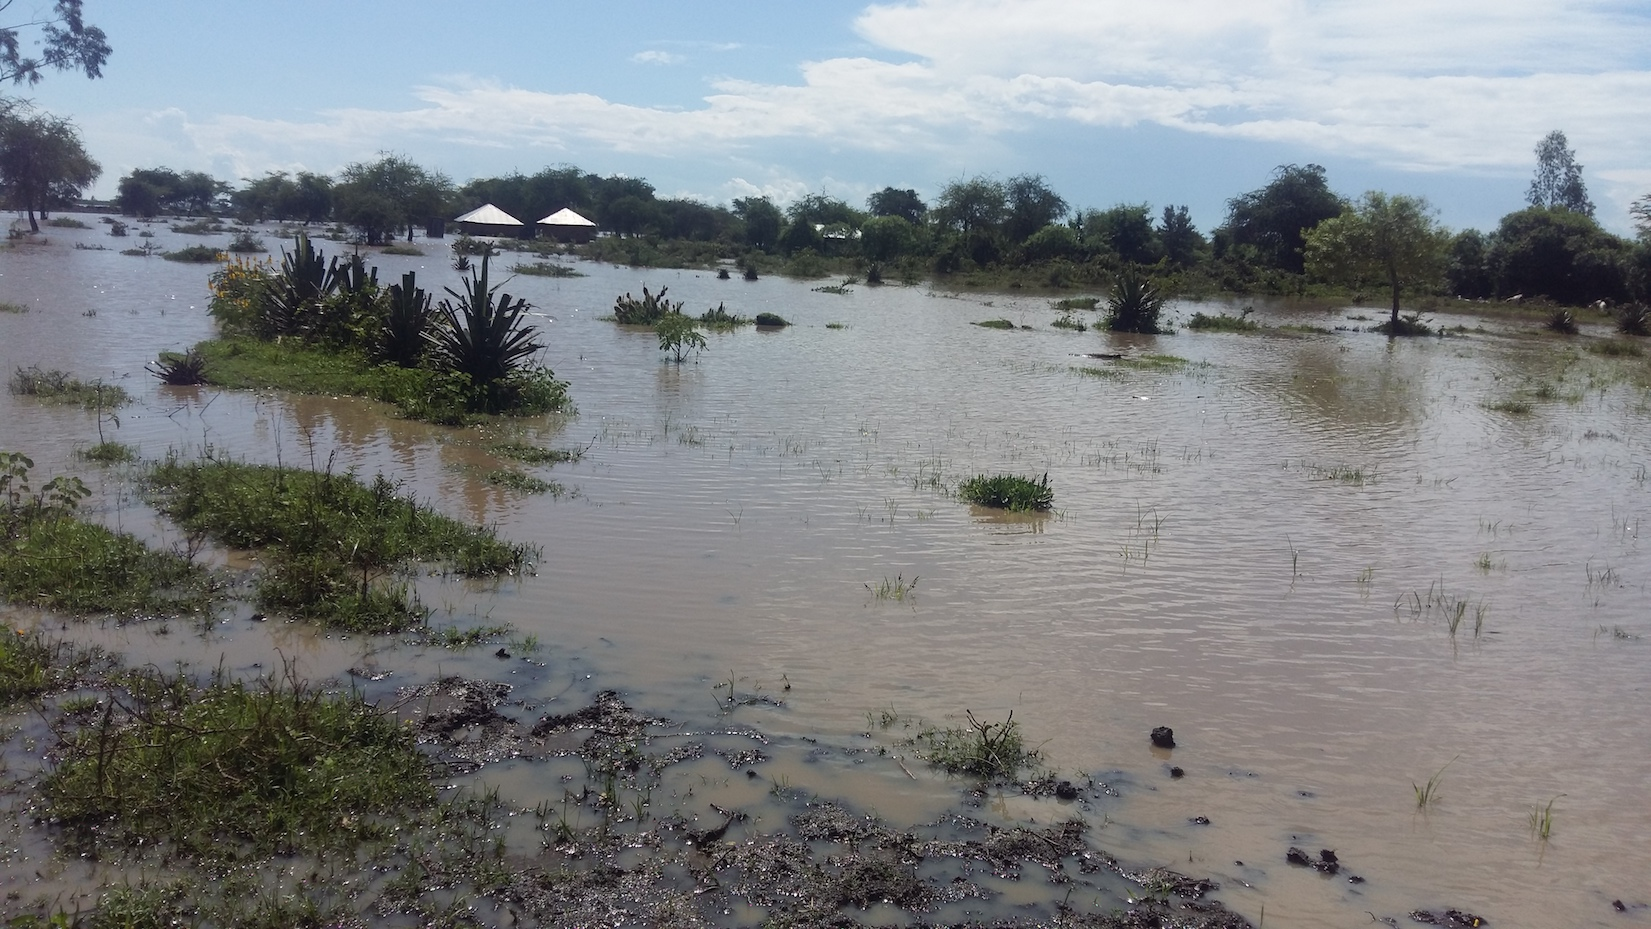 Floods destroyed property at Kalawa in Kenya's Machakos County. ©World Vision Photo/Hellen Owuor